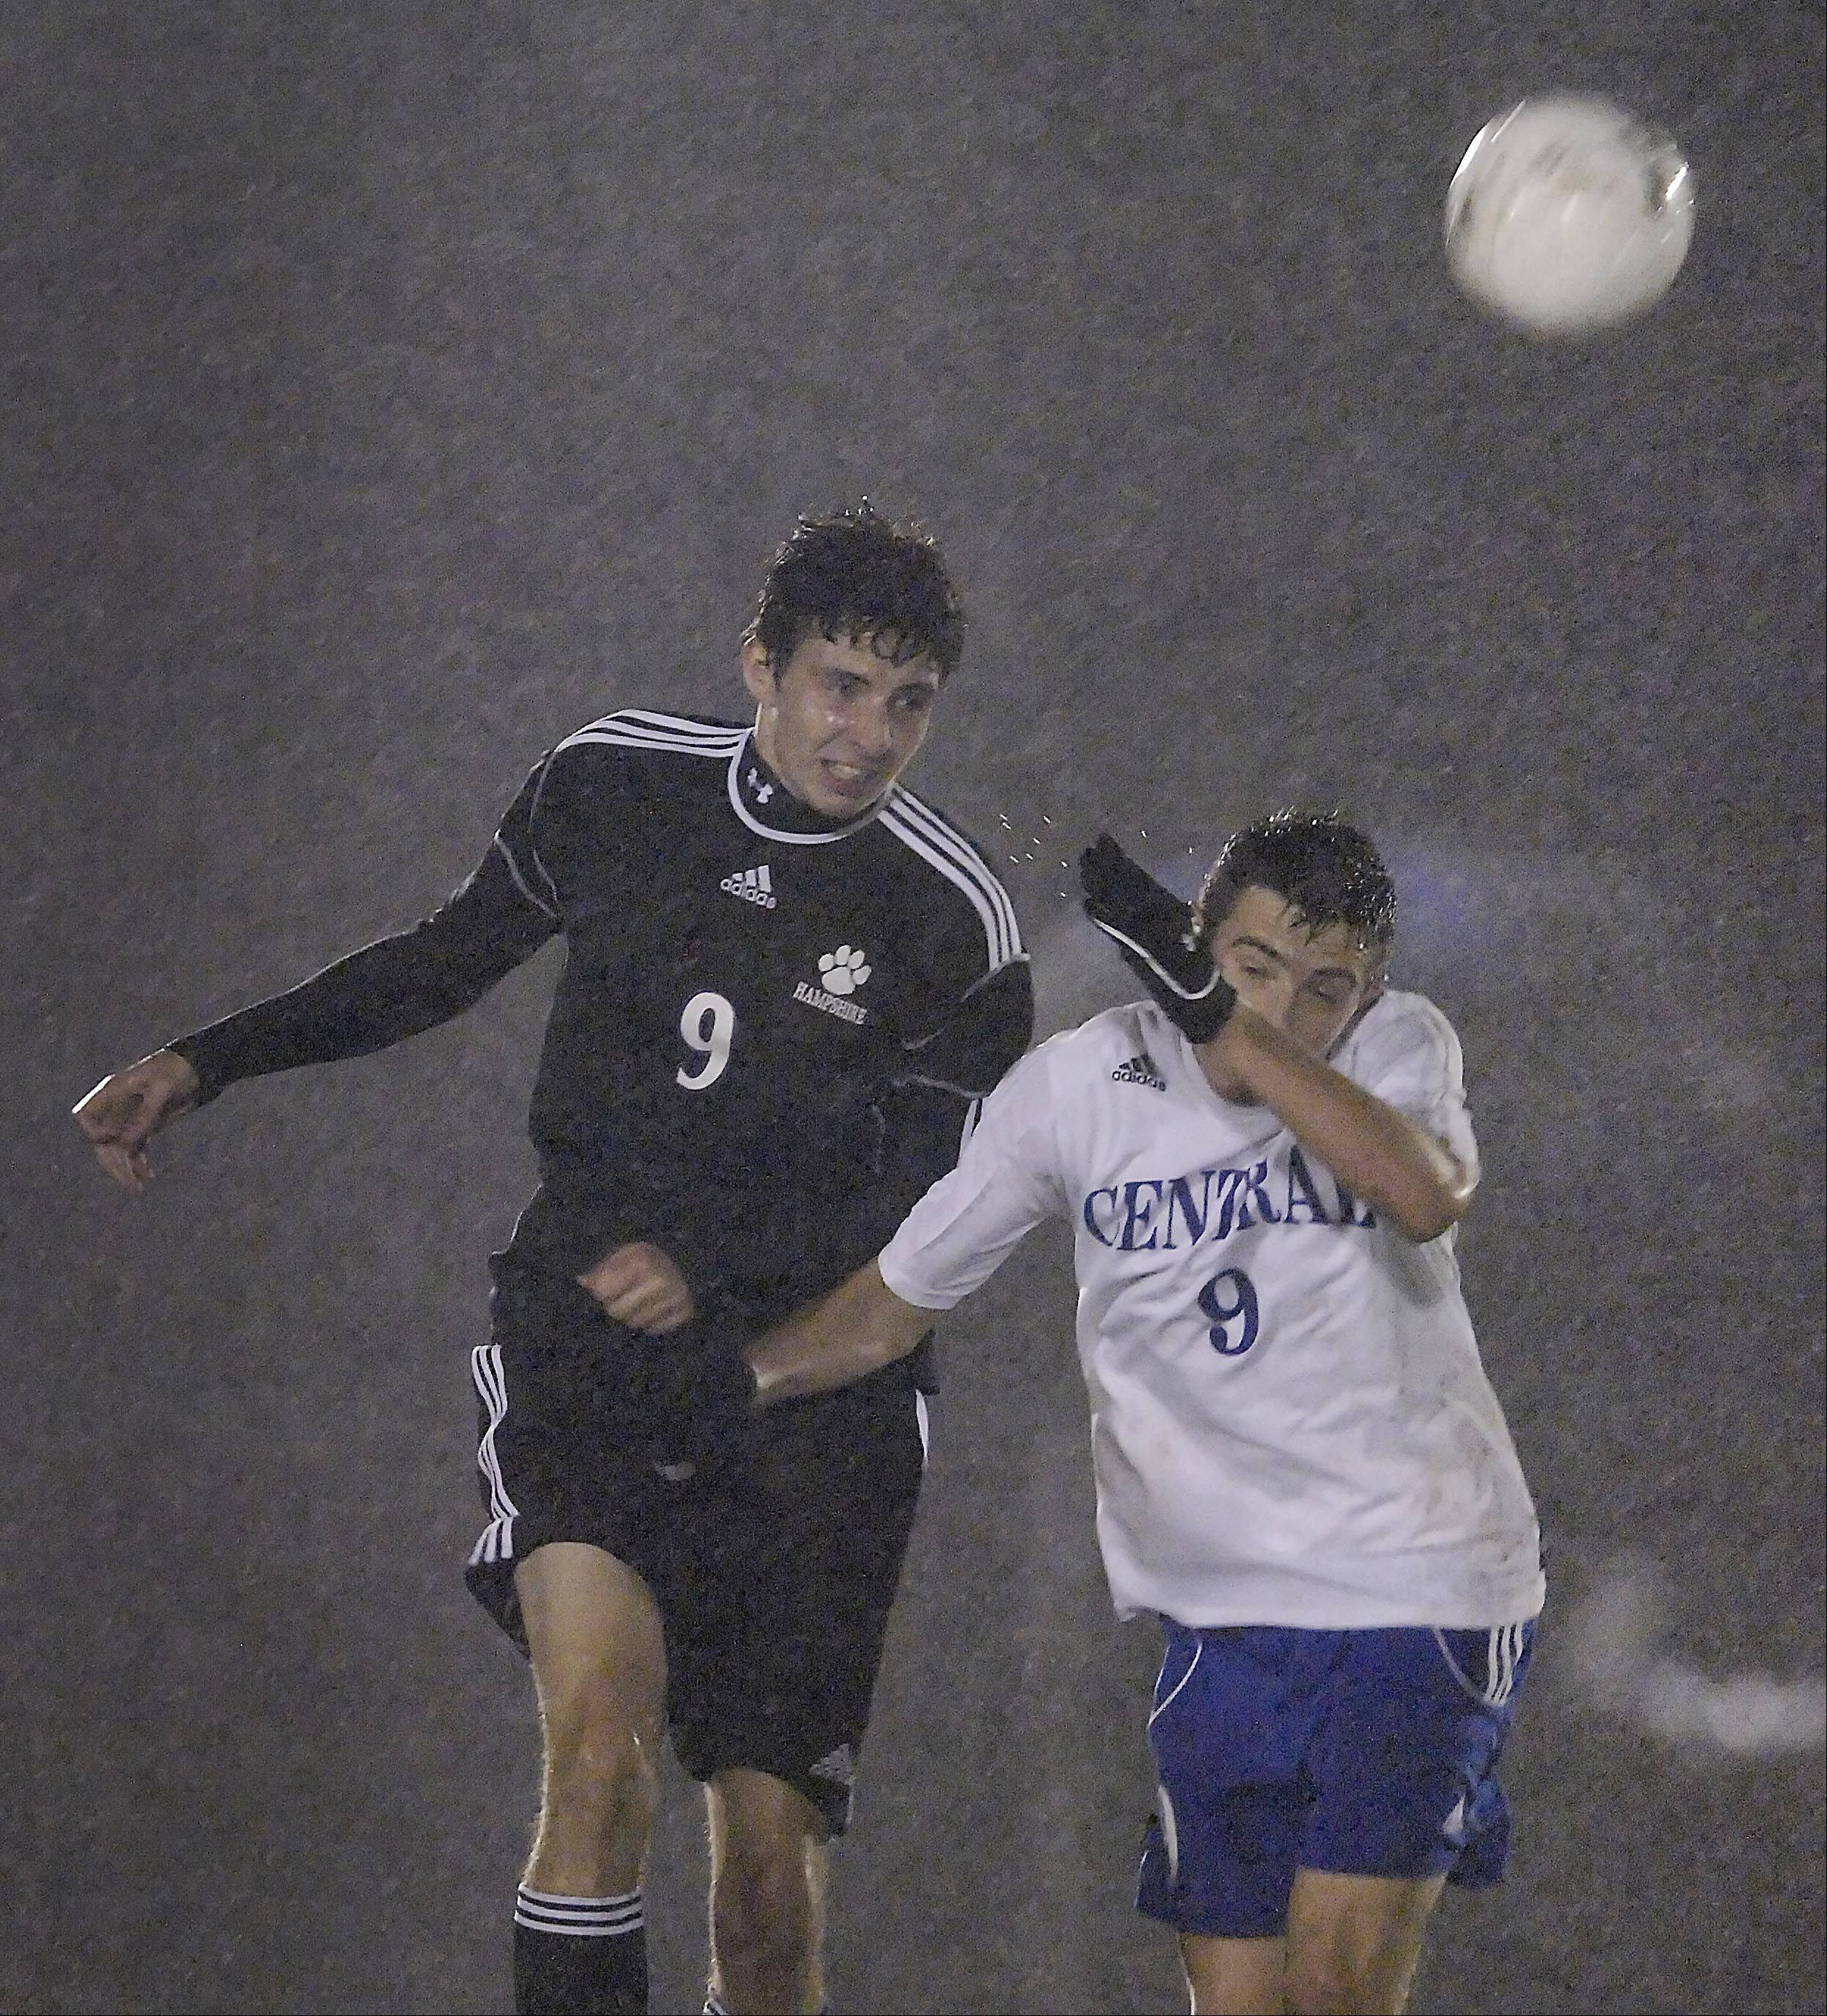 Burlington's Matt O'Connor, right, and Hampshire's Joseph Vietinghoff charge for the ball in the rain Wednesday in the Burlington regional playoff game.